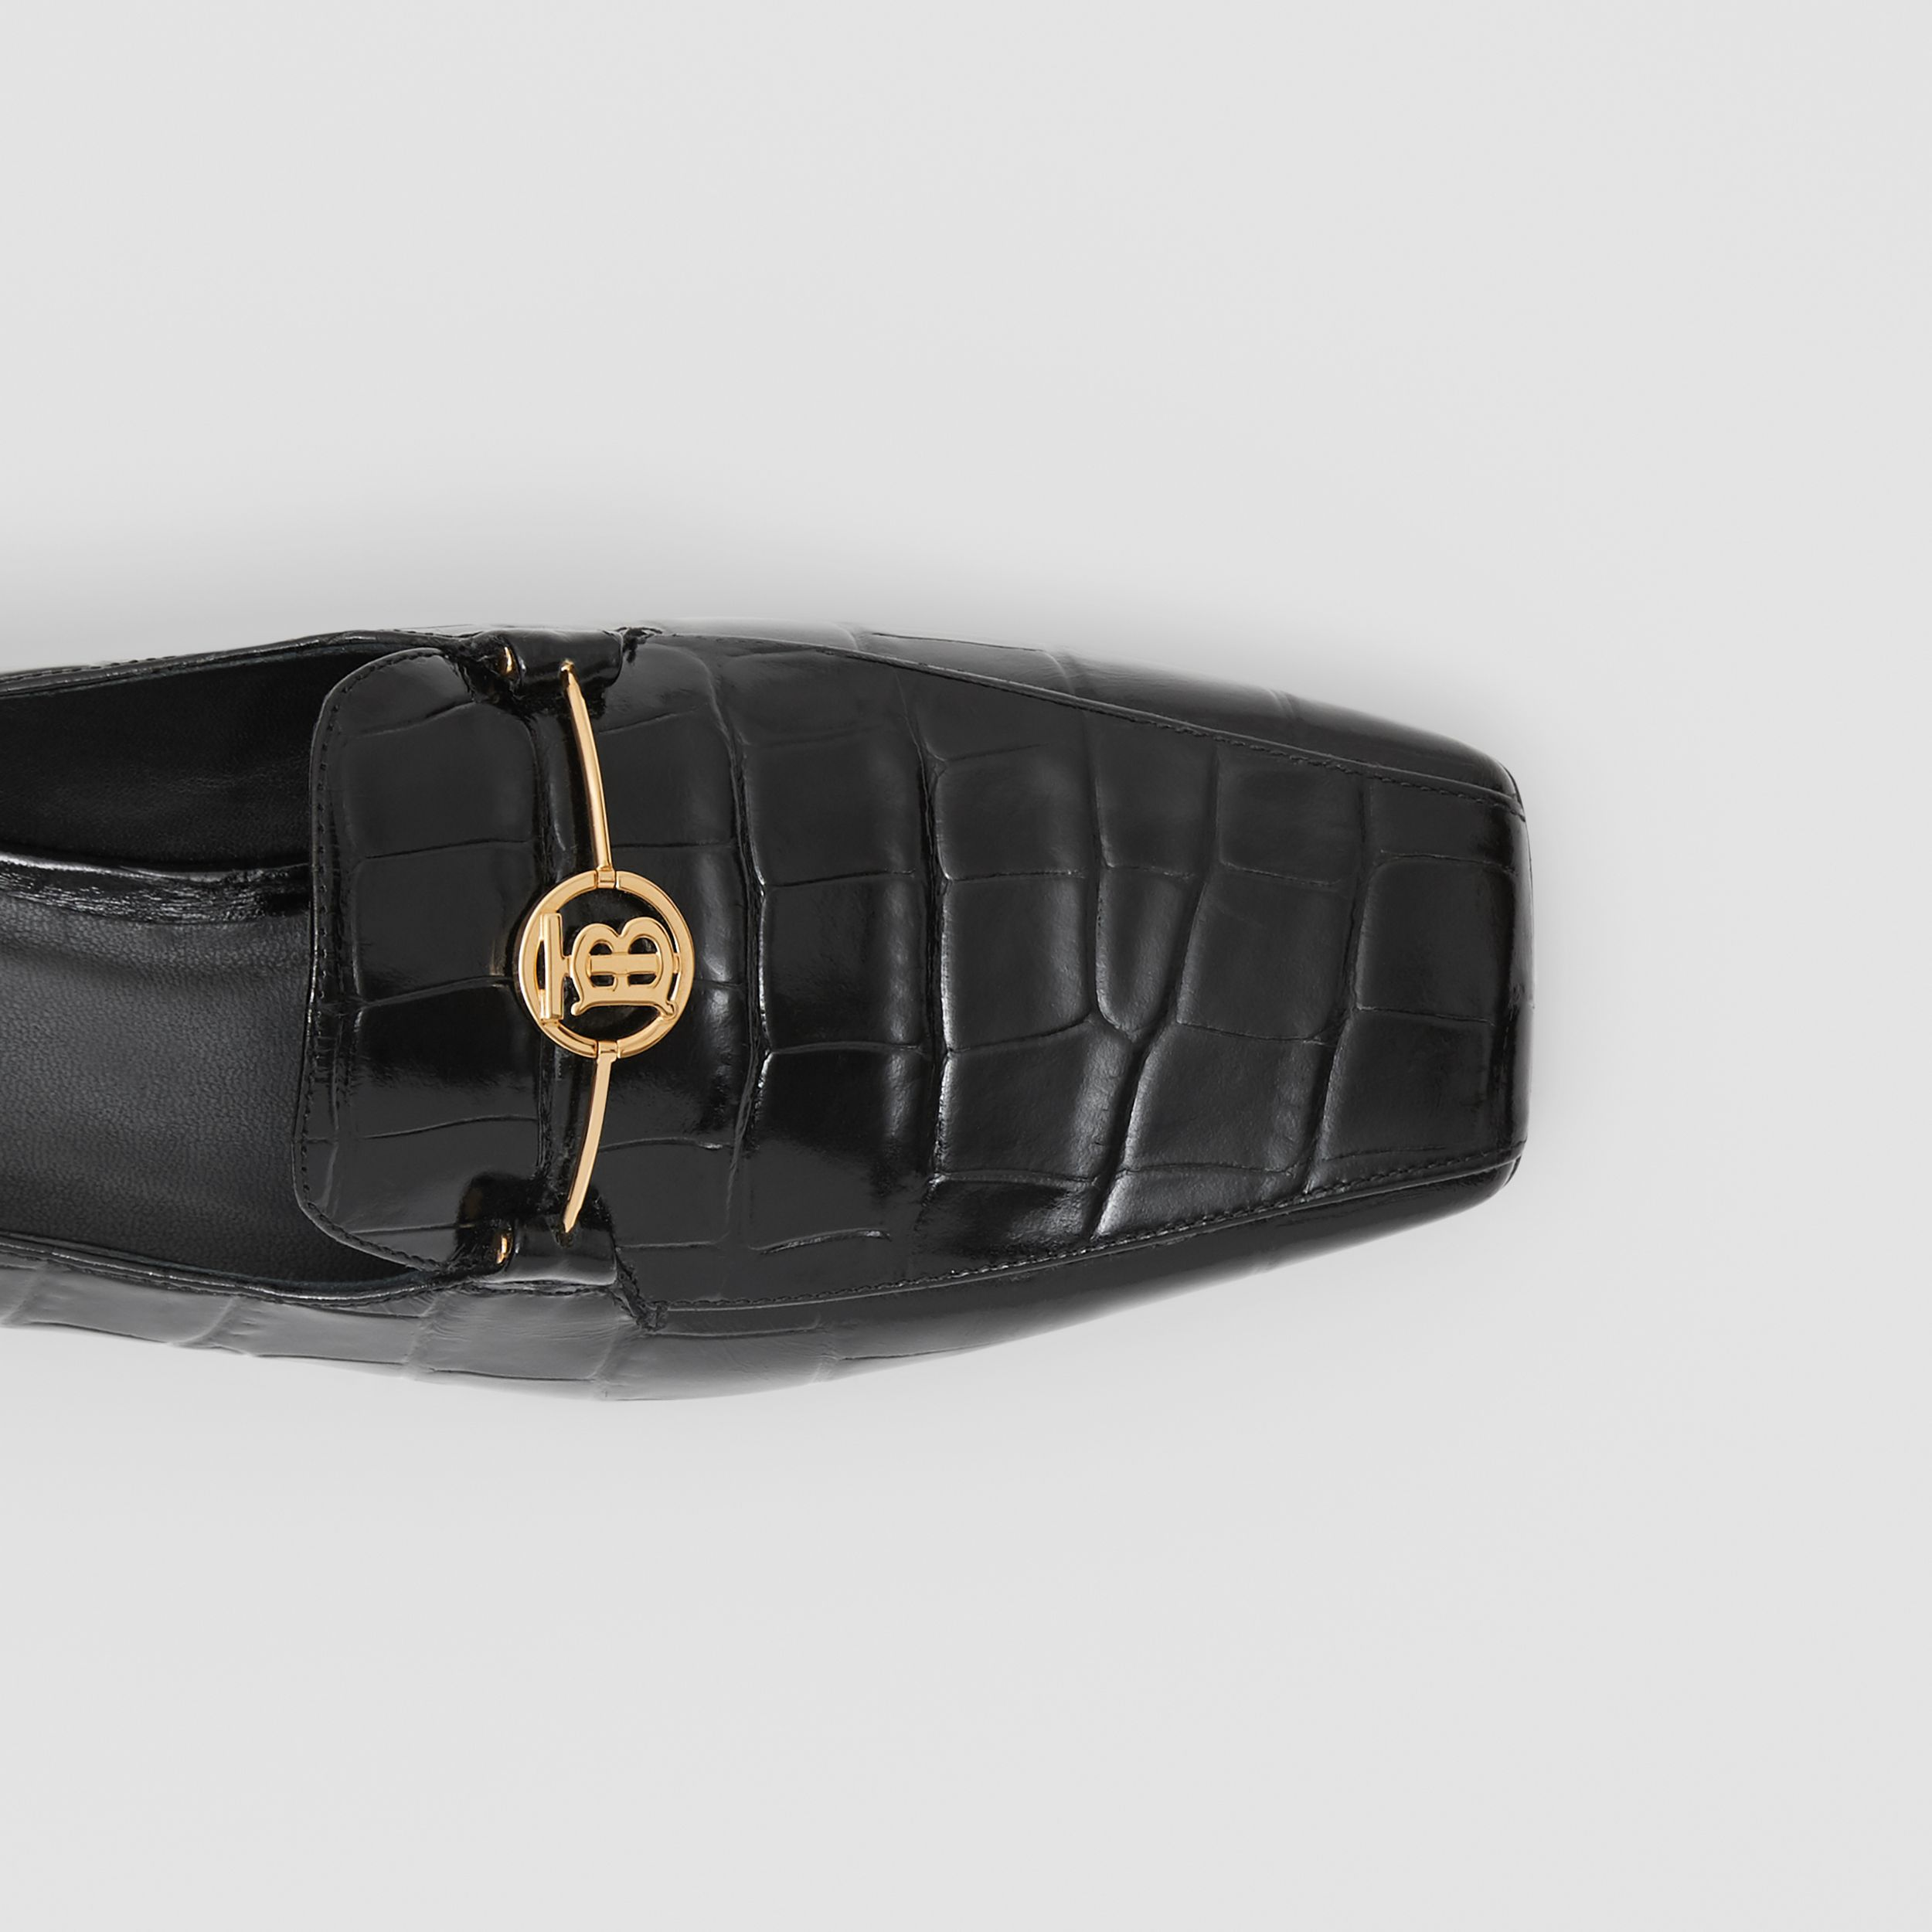 Monogram Motif Embossed Leather Loafers in Black - Women | Burberry - 2